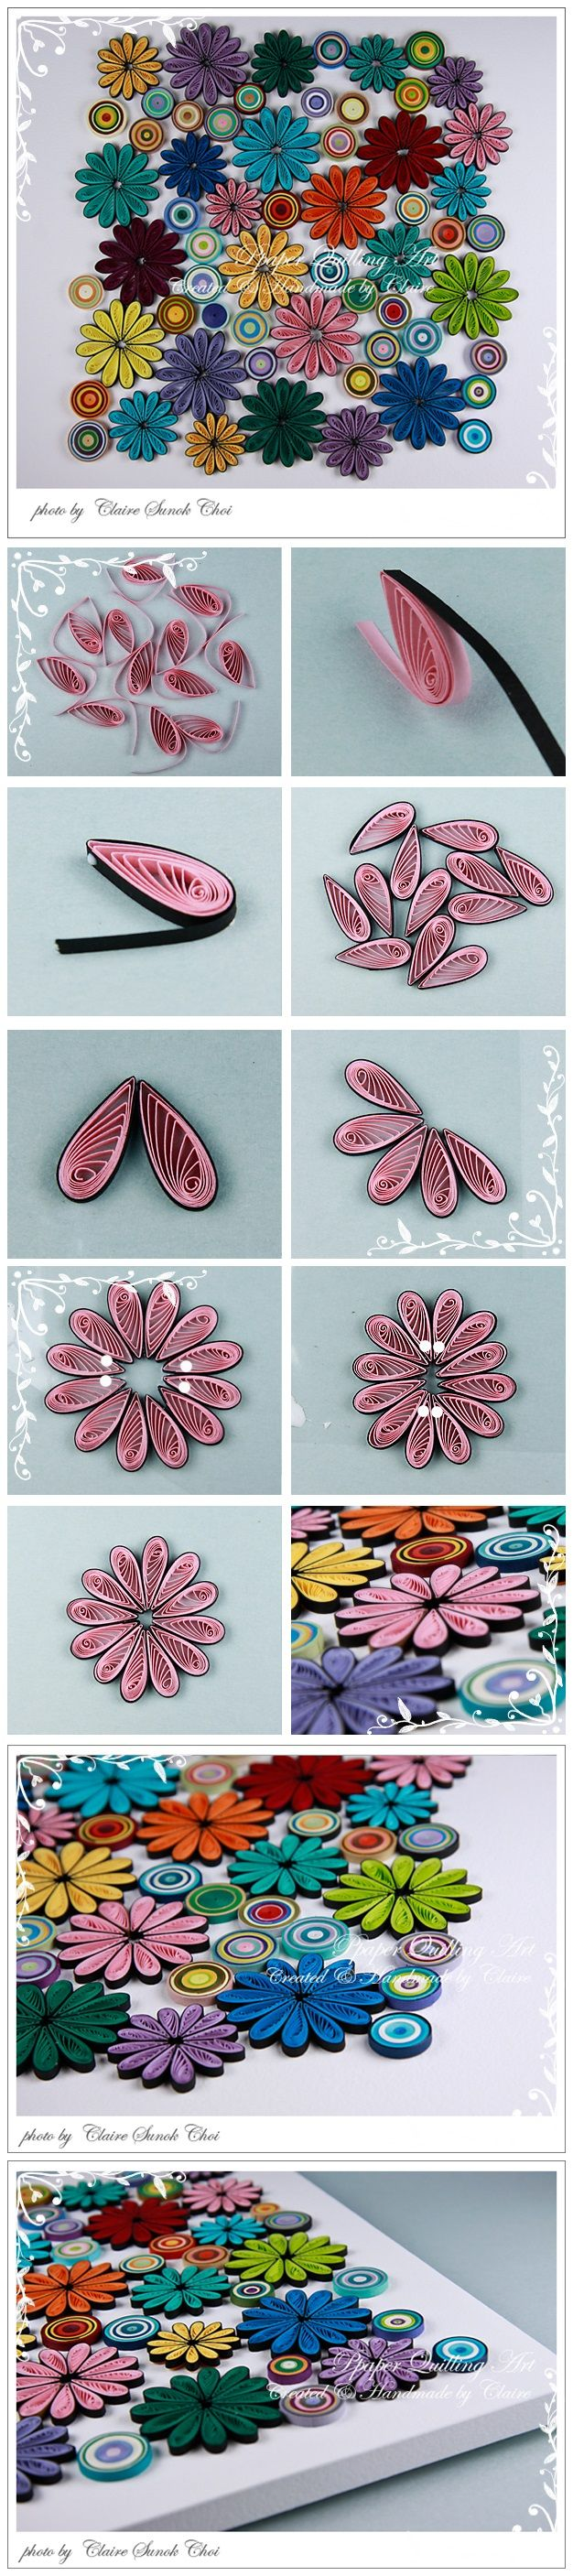 Diy Projects Paper Wall Art For Your Rooms Diy Pinterest Diy